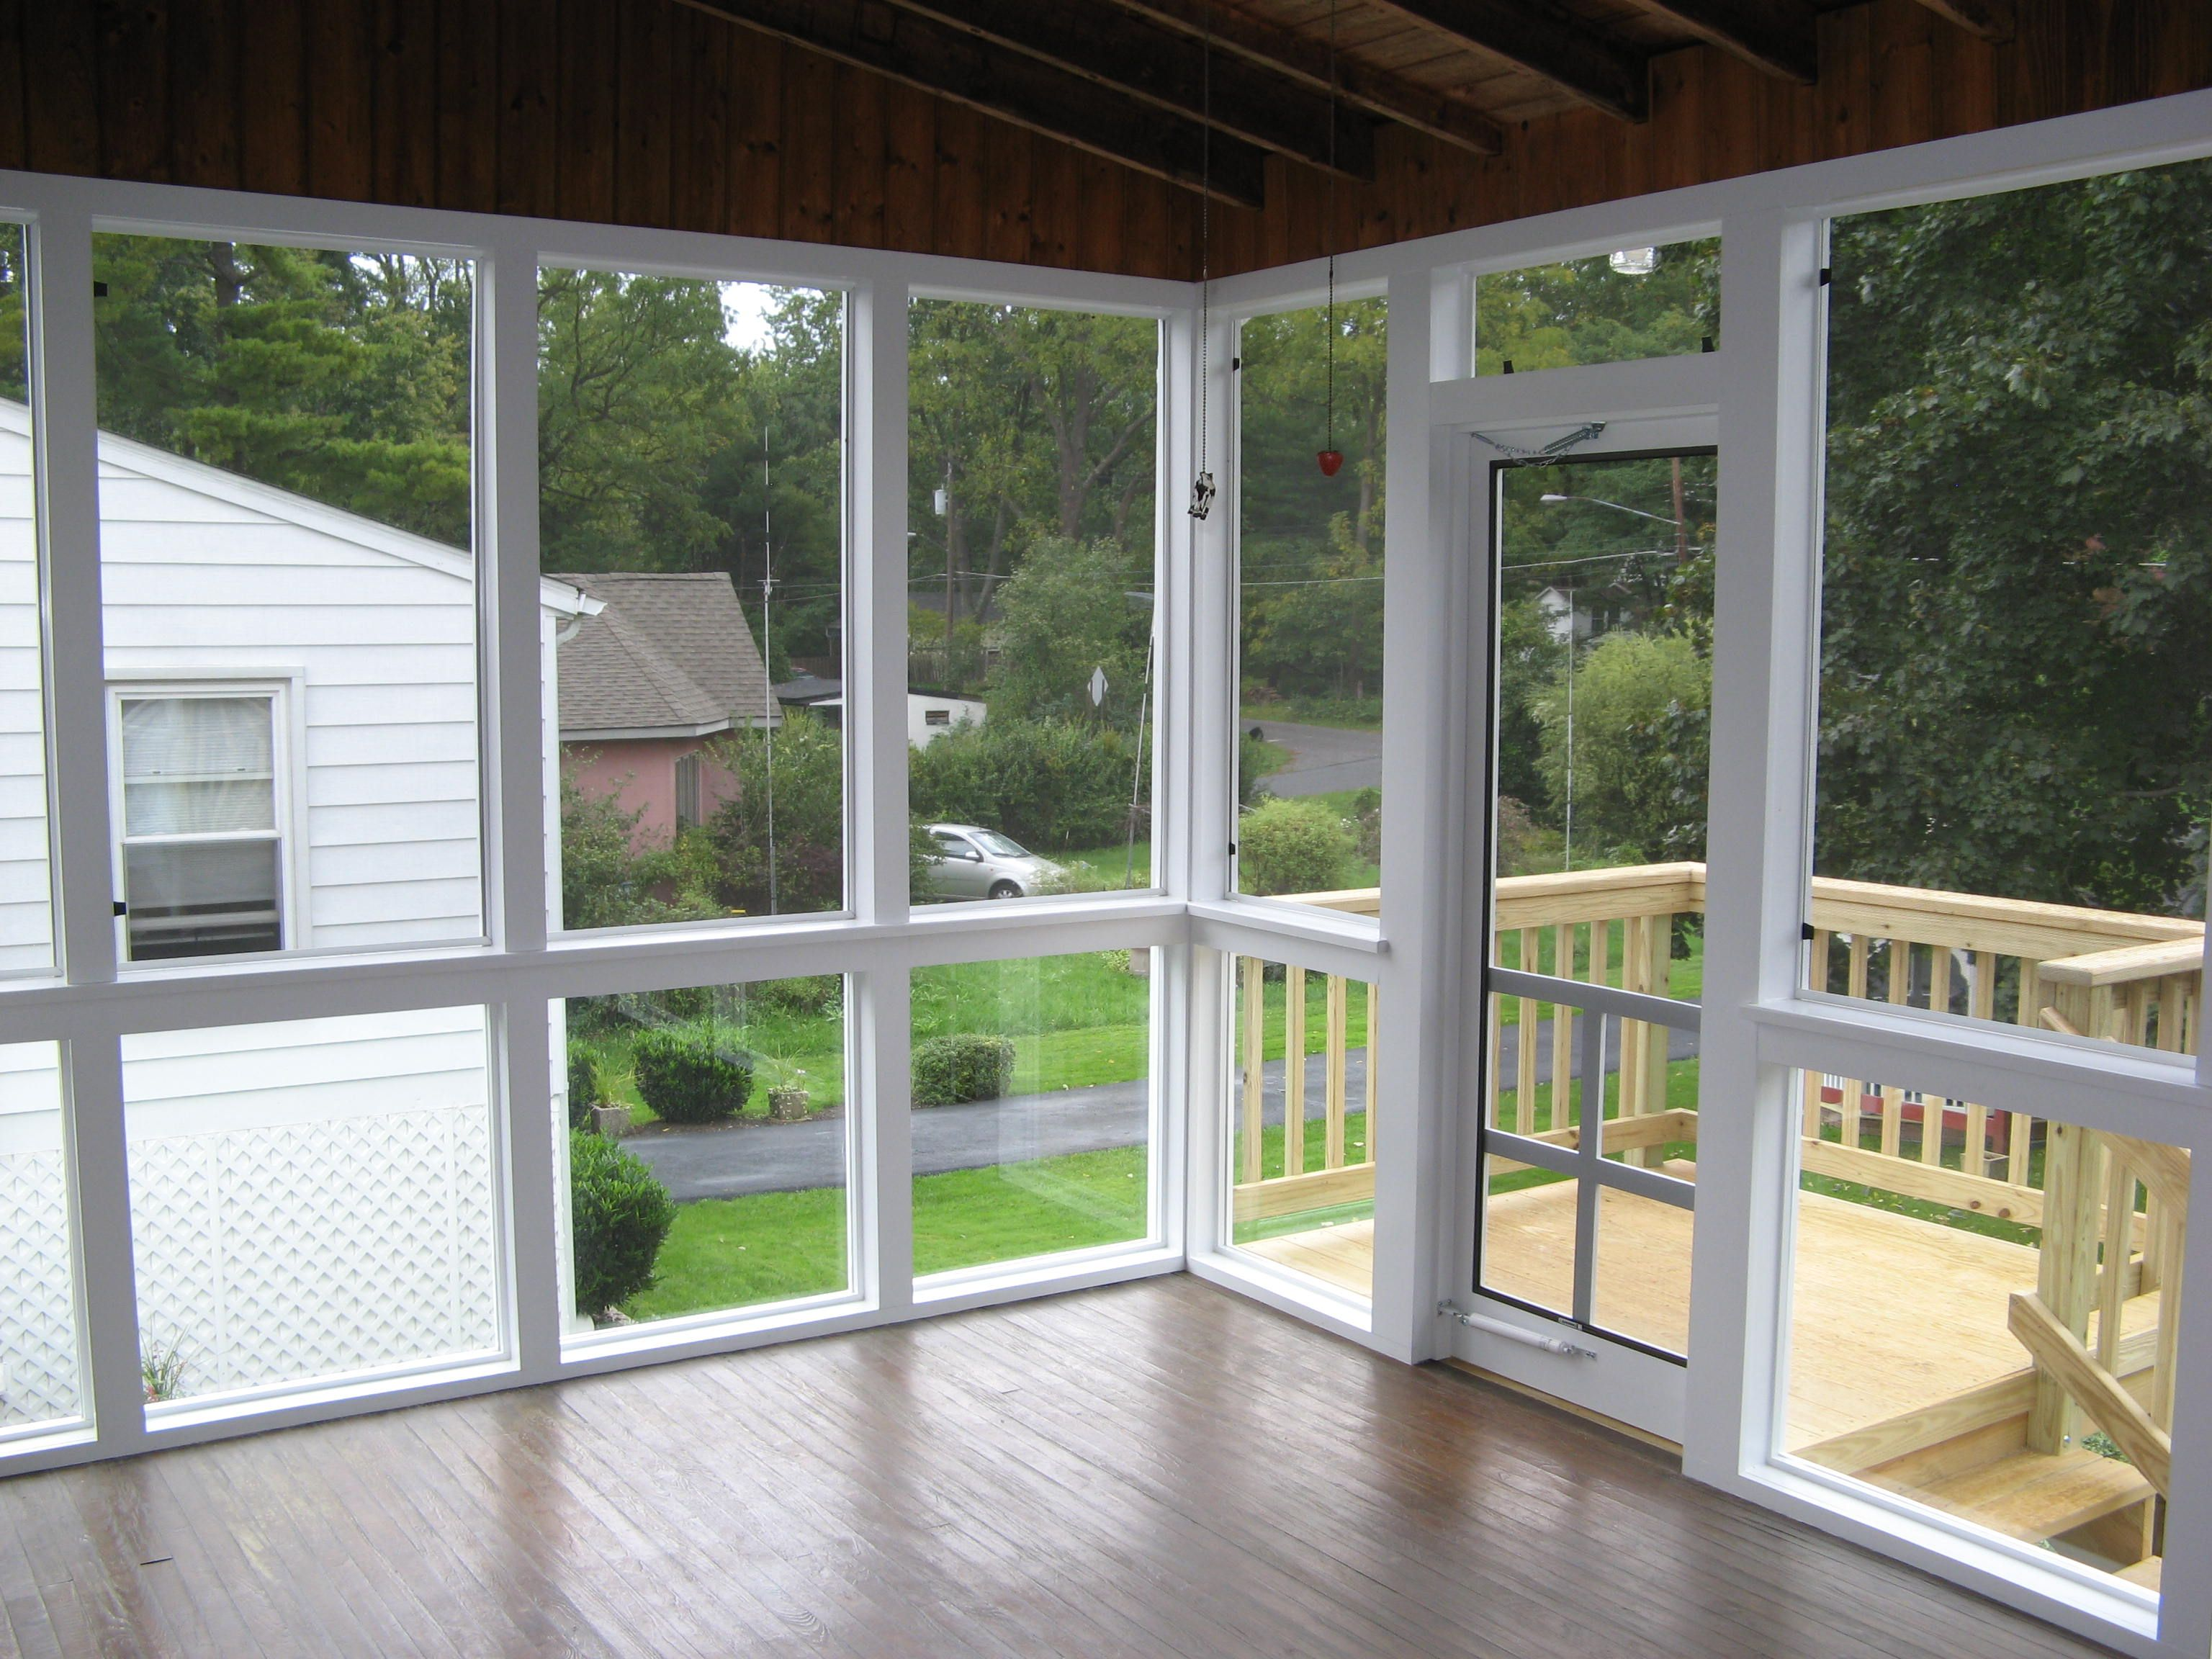 Screened Porch W Tempered Glass Panels On Lower Sections Screen Porch Panels Glass Porch Porch Windows